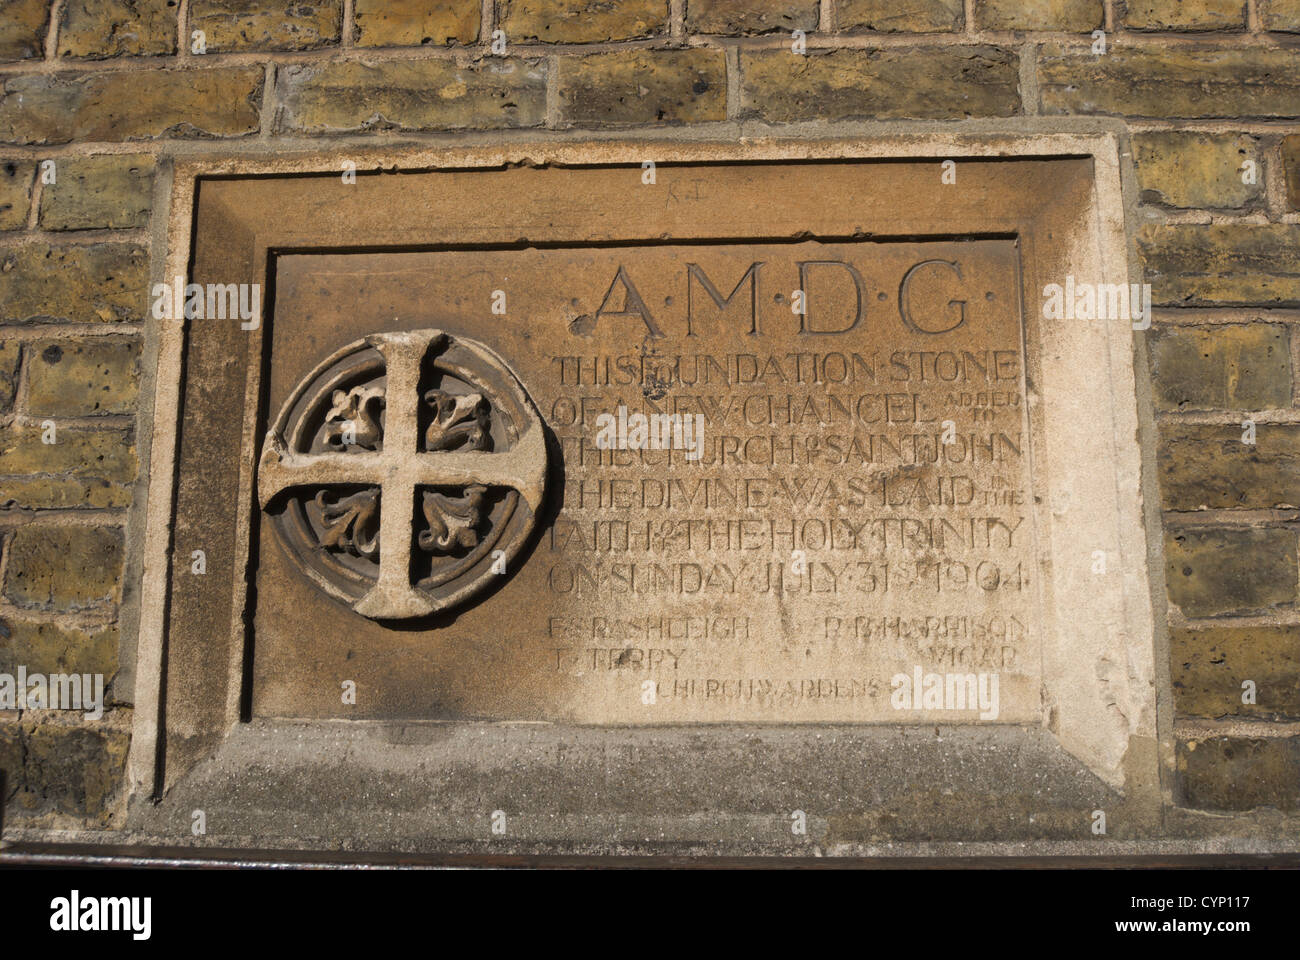 1904 foundation stone marking a new chancel at the church of st john the divine, richmond, surrey, england - Stock Image